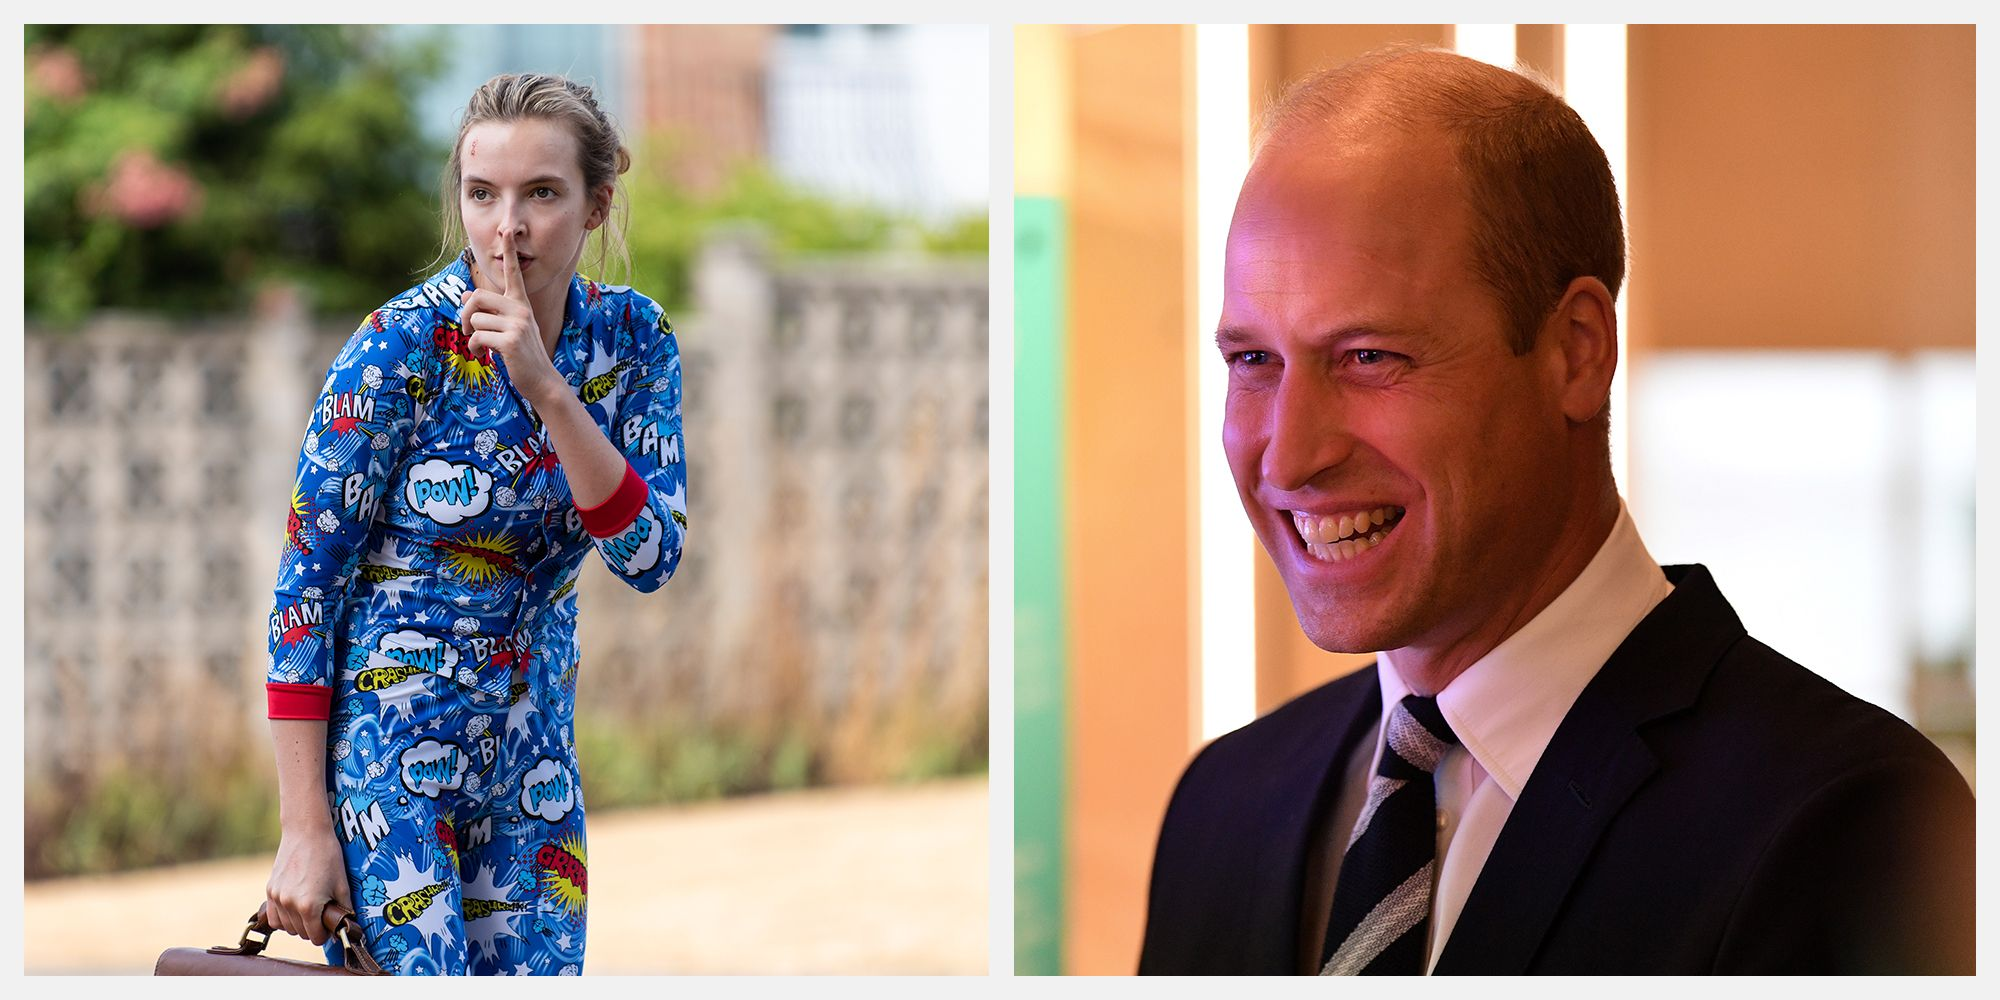 Prince William Got a Pair of PJs Worn by Killing Eve's Villanelle